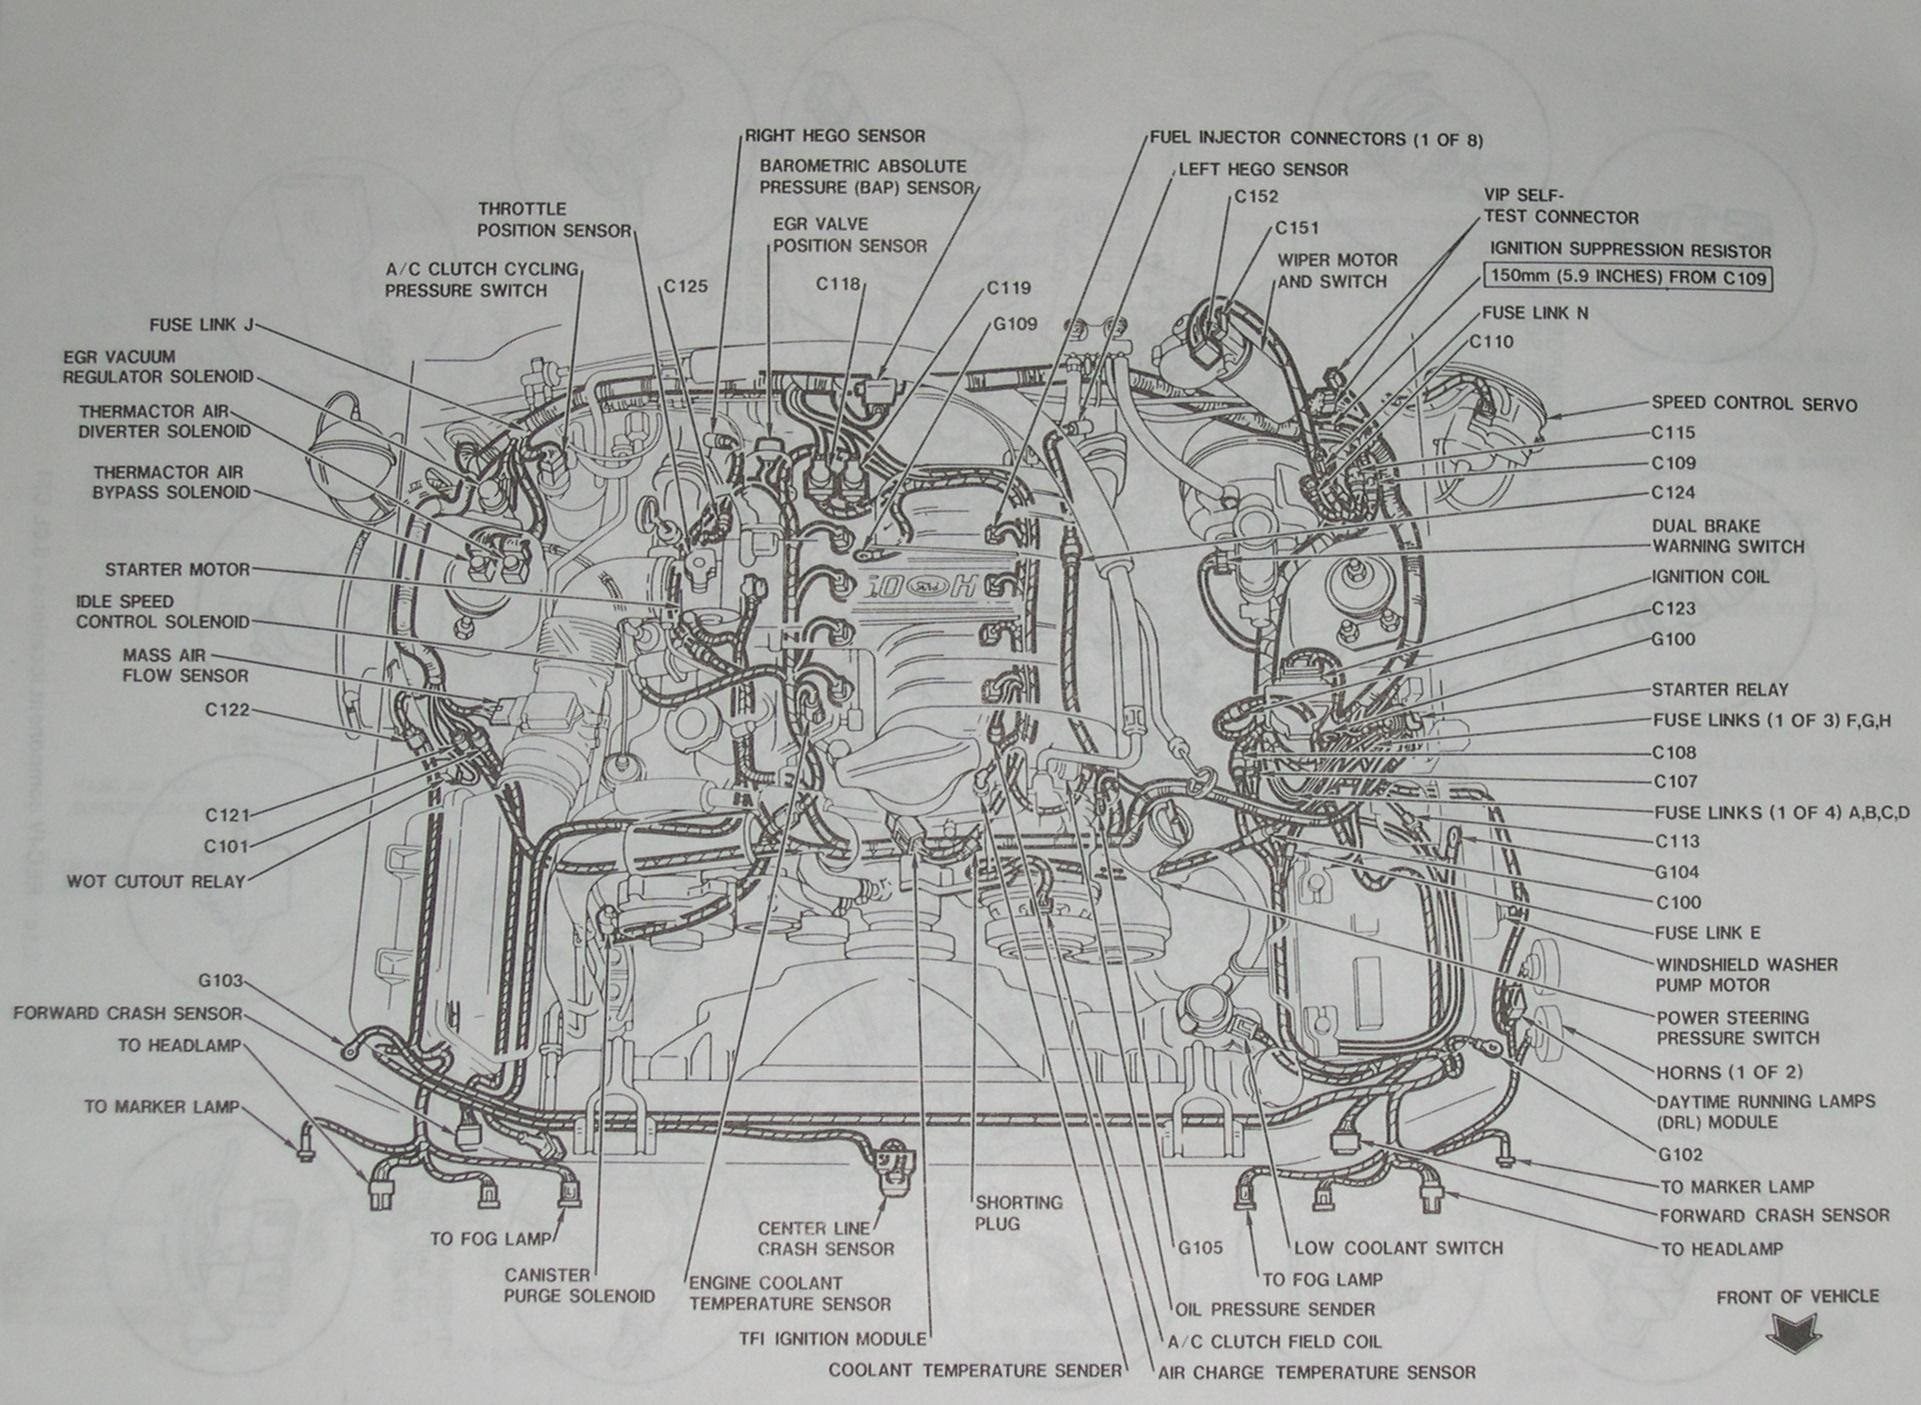 2007 Ford Mustang Engine Diagram Wiring Diagrams Collection Collection Chatteriedelavalleedufelin Fr